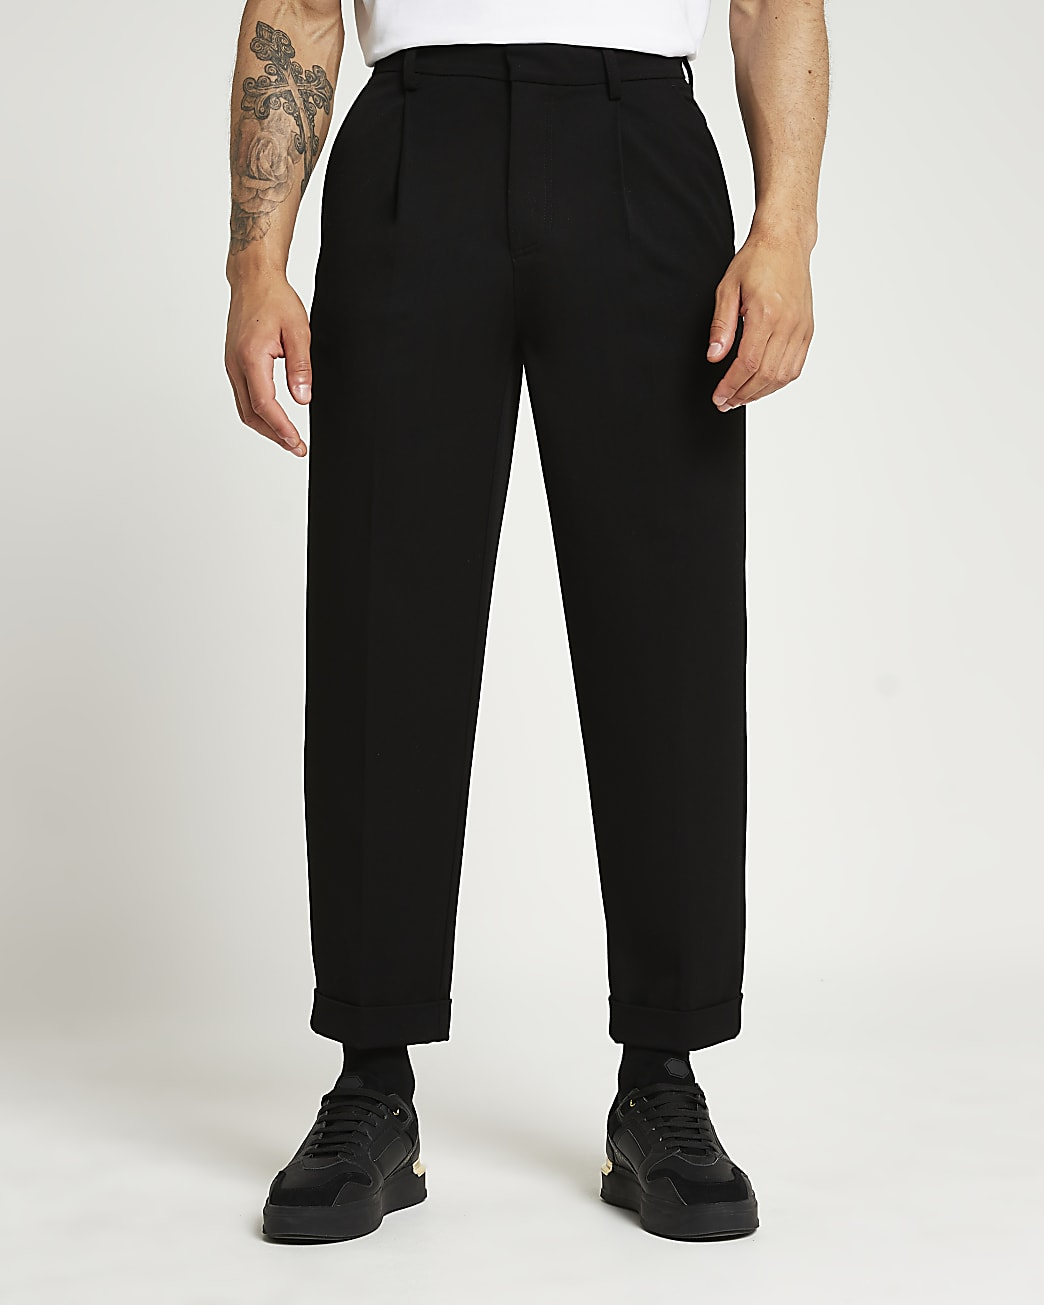 Black twill tapered fit trousers